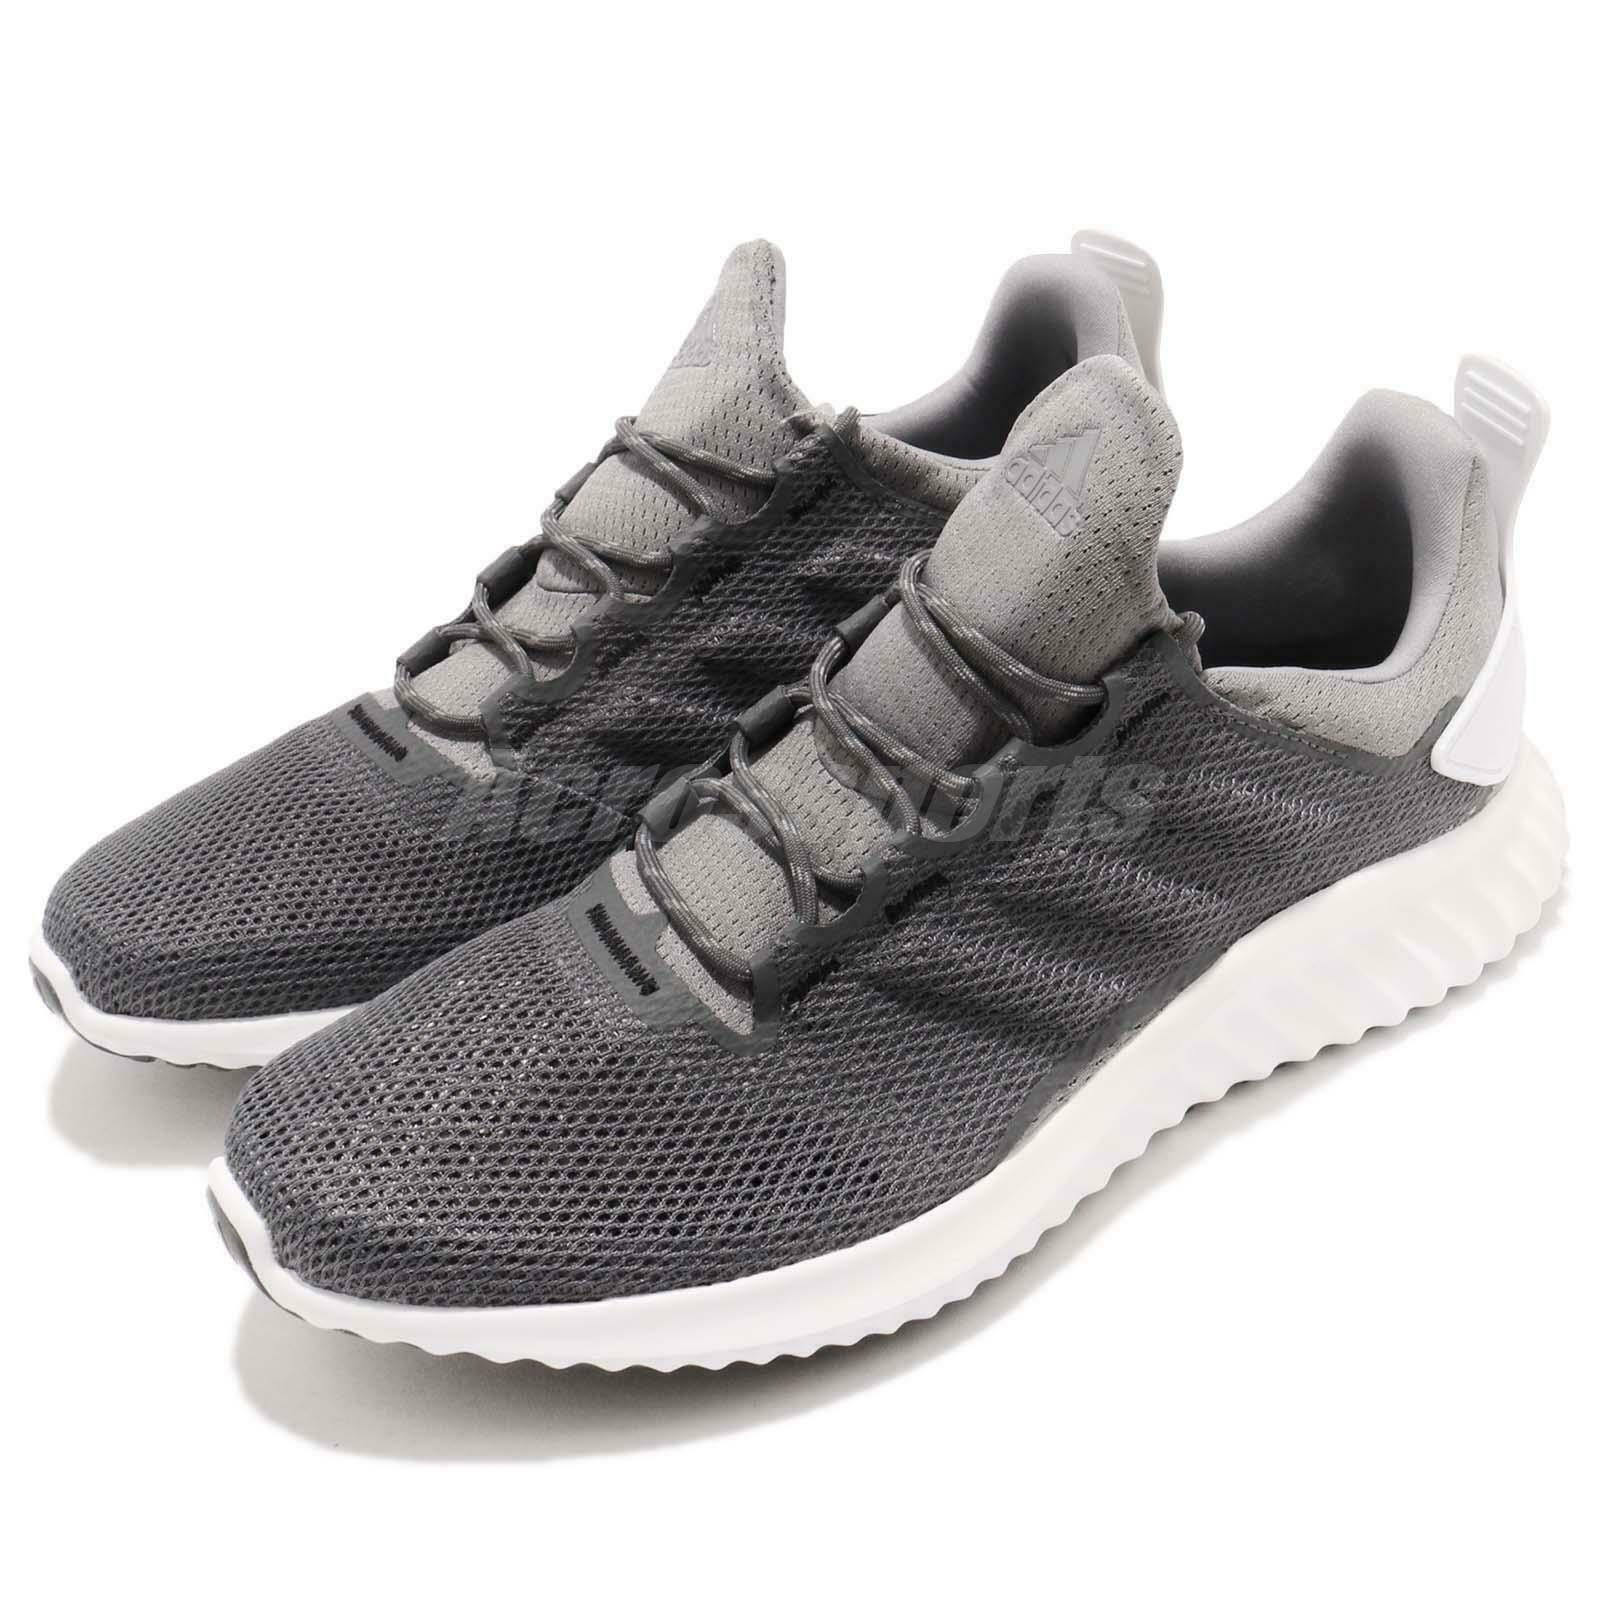 Adidas Alphabounce CR CC M  City Run Clima Grey White Men Running shoes AC8183  timeless classic